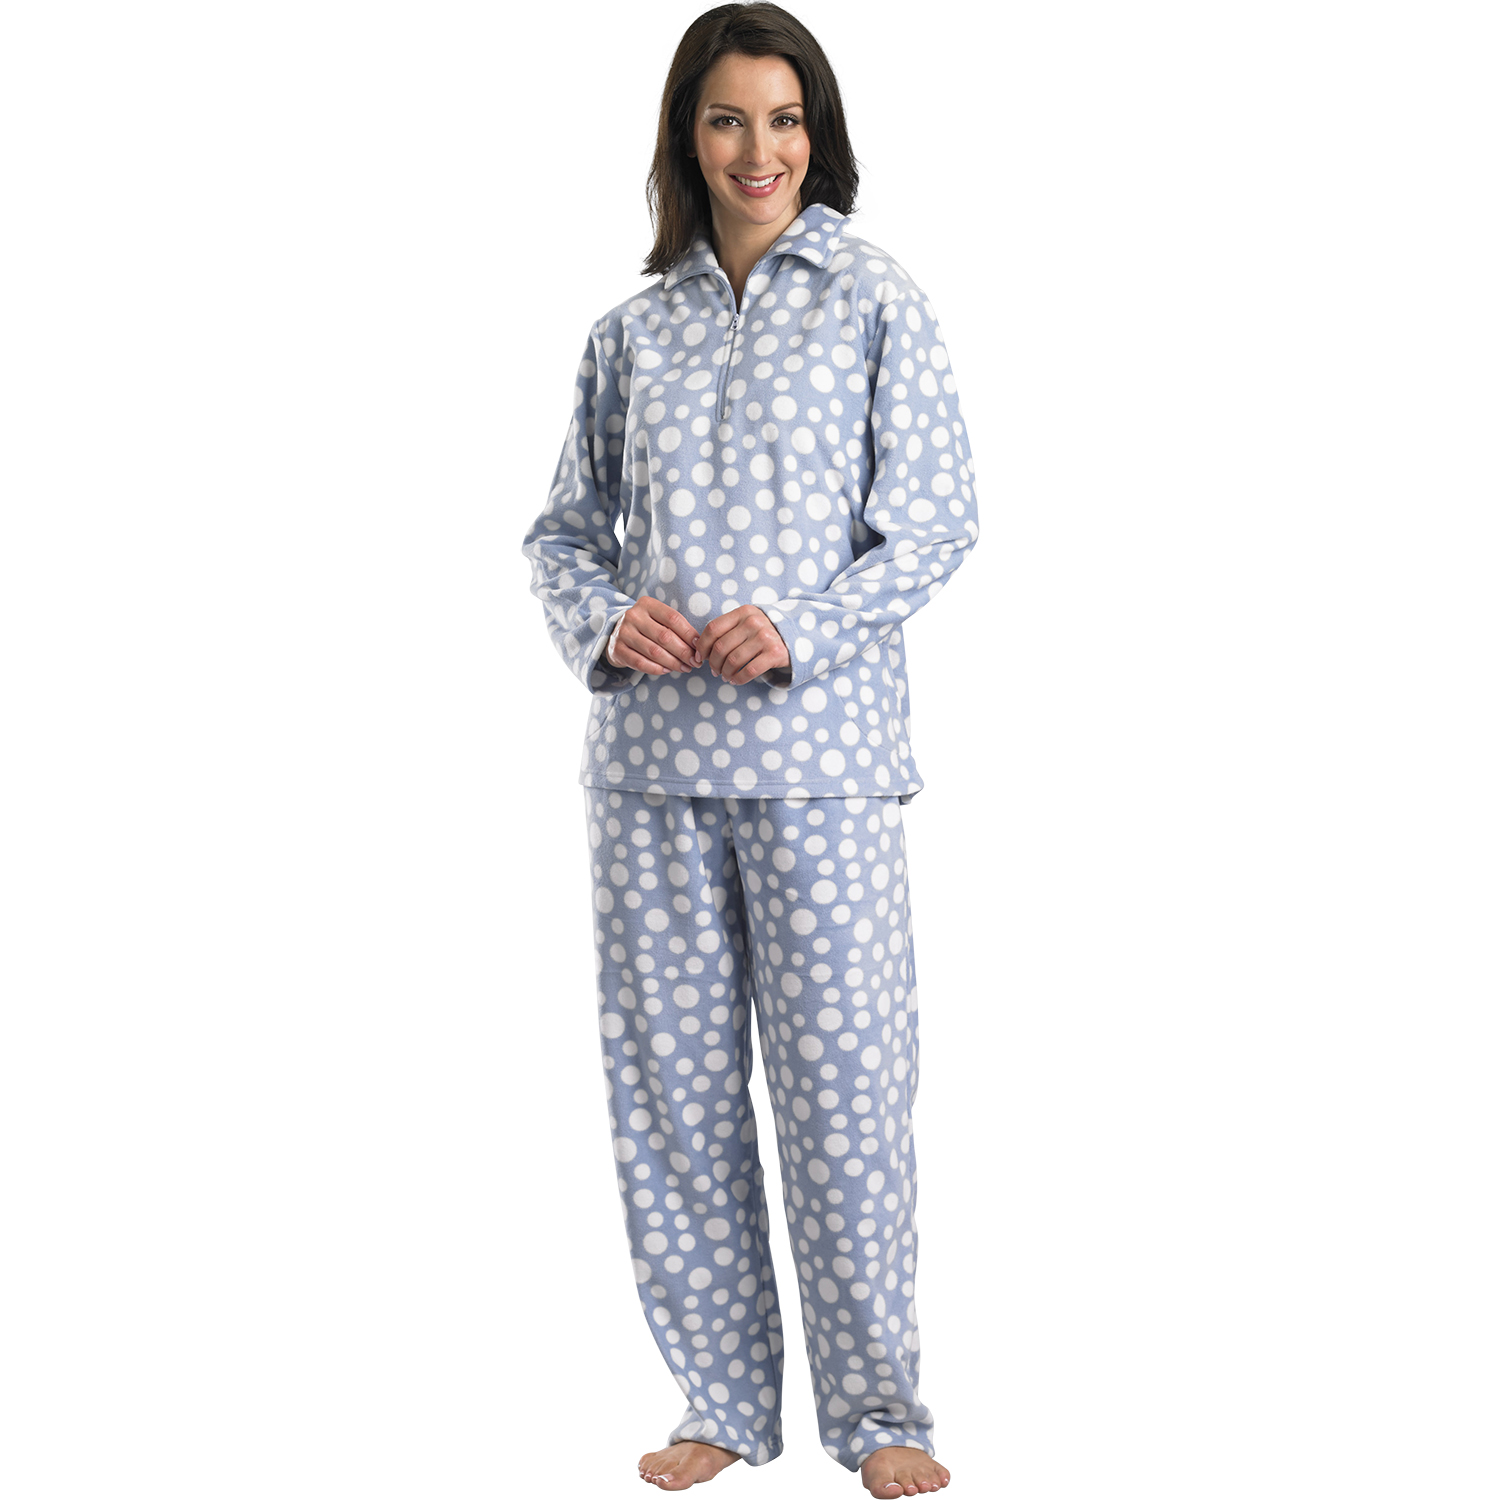 Womens Slenderella Polka Dot Pyjamas Ladies Soft Polar Fleece ...